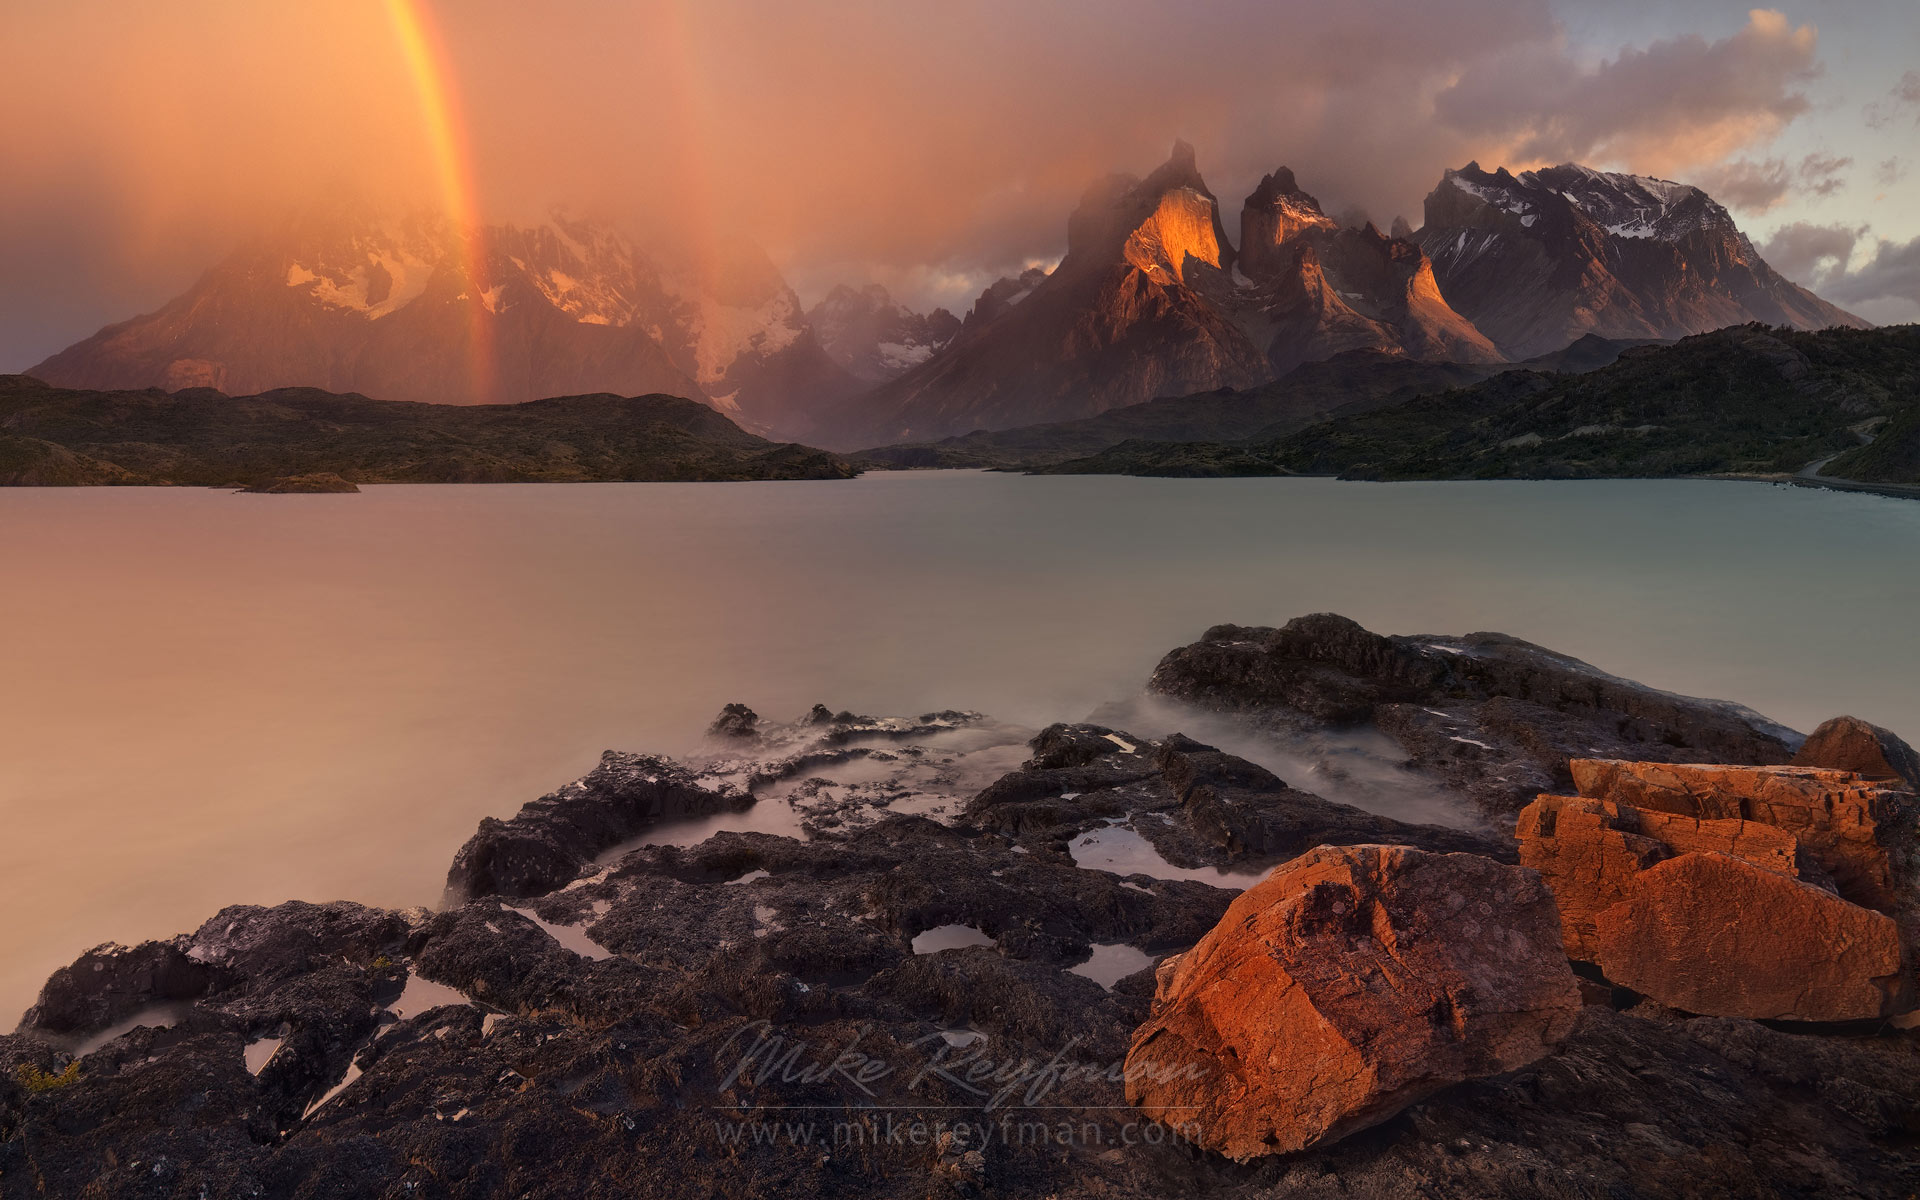 Cordillera del Paine and Rainbow. Lago Pehoe, Torres del Paine National Park, Ultima Esperanza Province, Magallanes and Antartica Chilena Region XII, Patagonia, Chile. - Torres-Del-Paine-National-Park-Patagonia-Chile - Mike Reyfman Photography